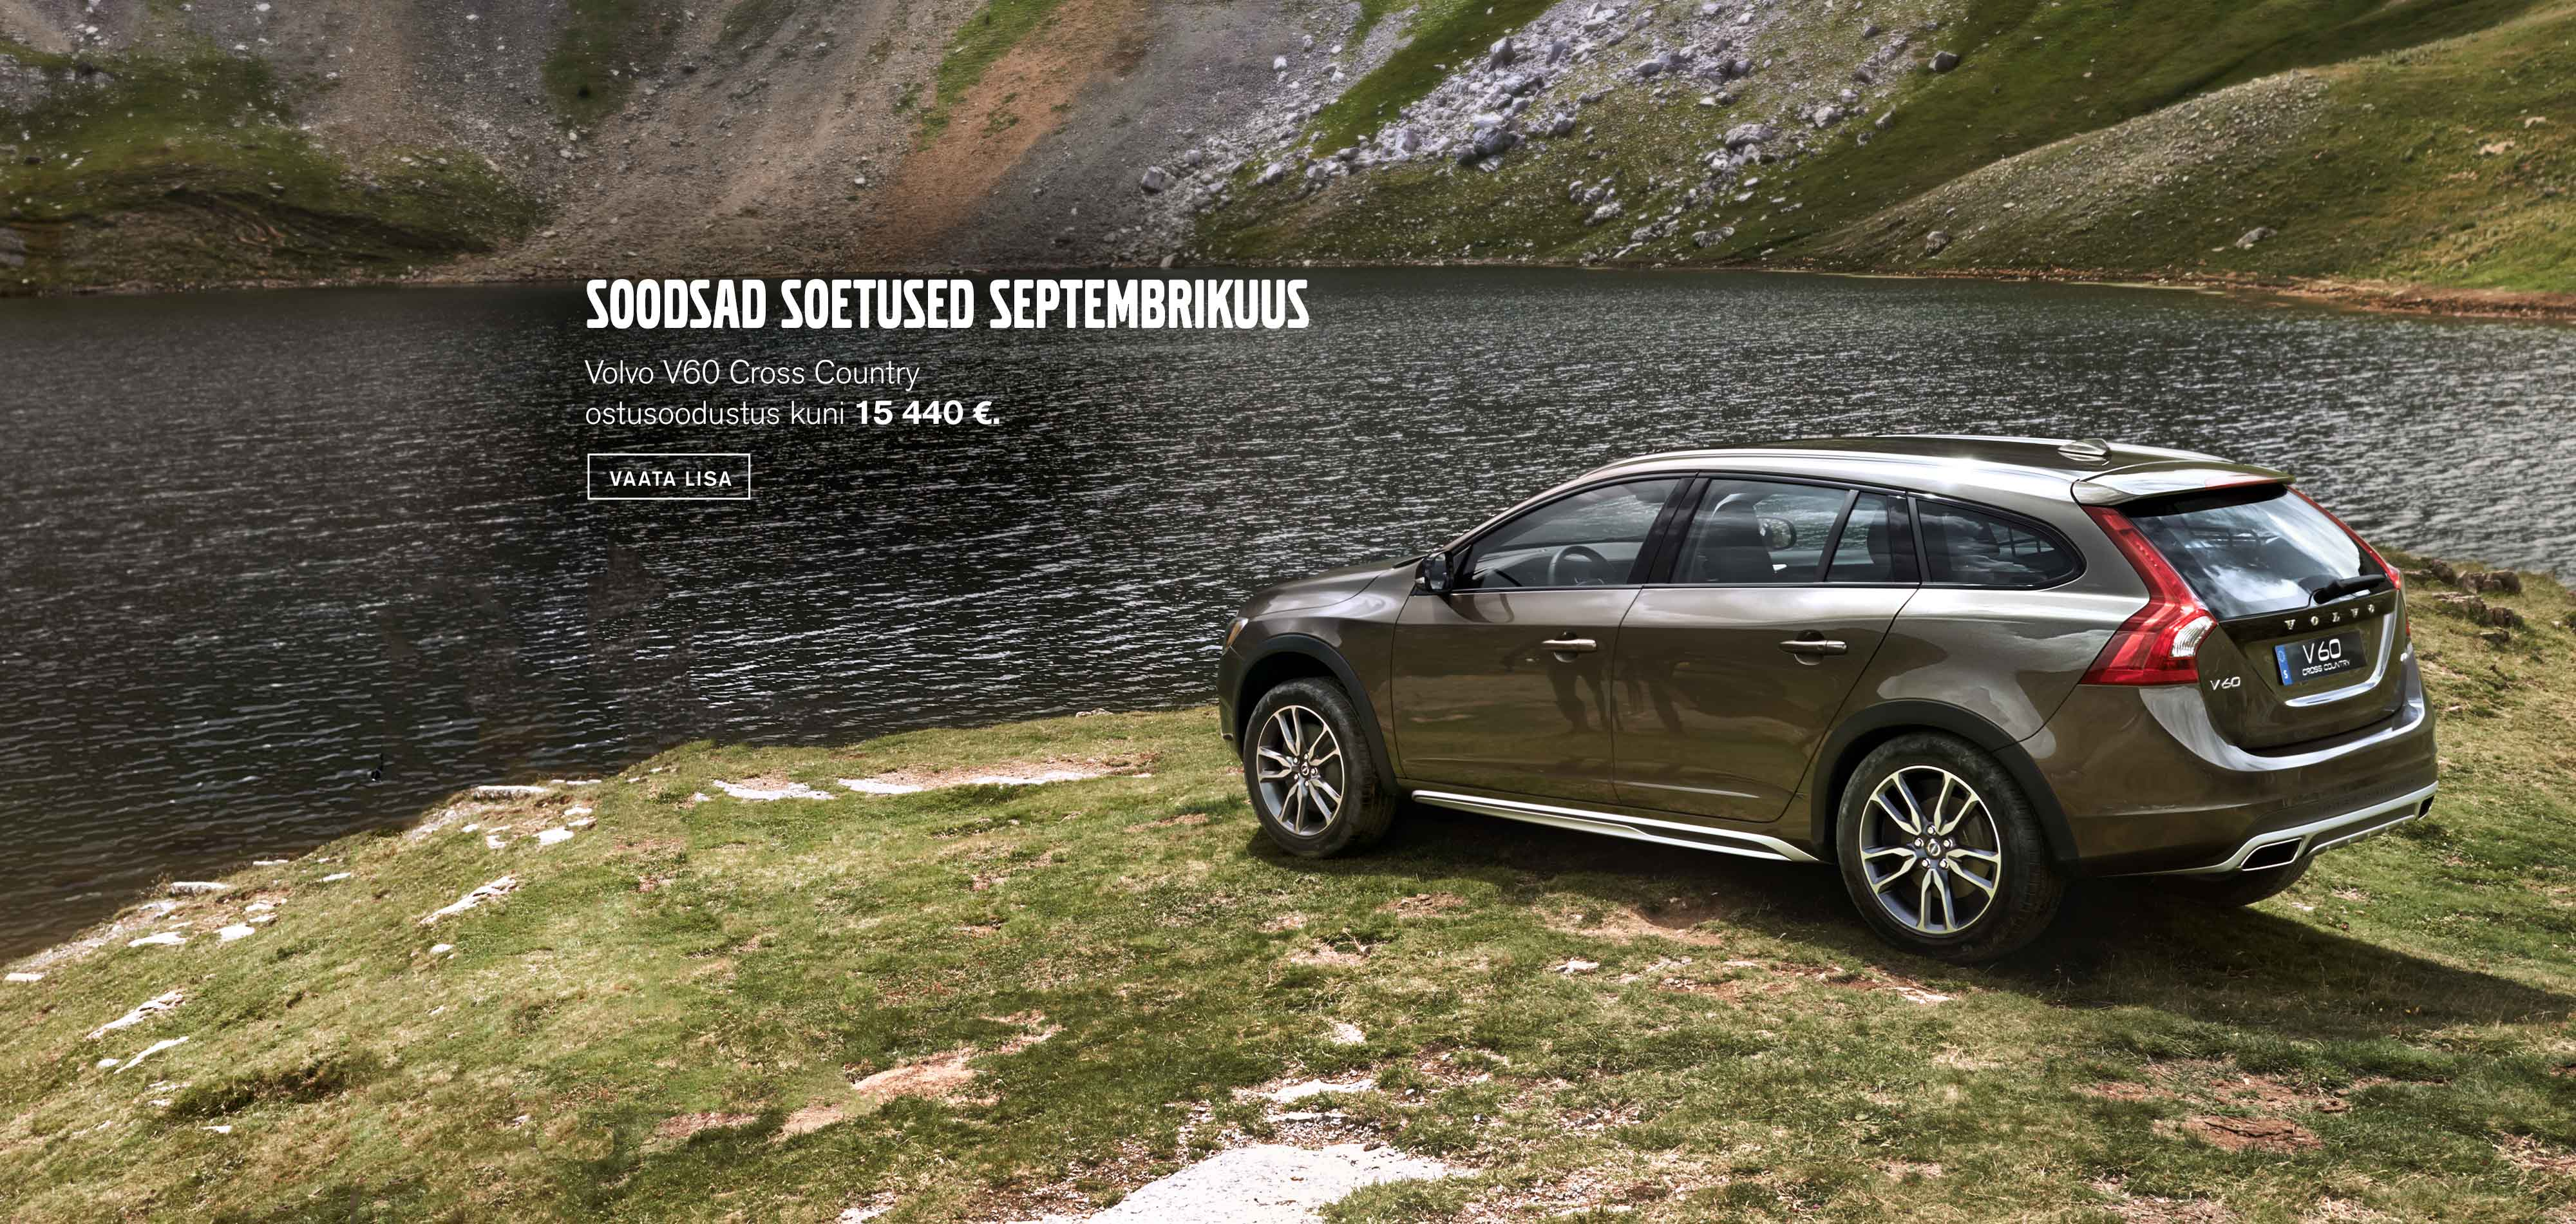 Volvo V60 Cross Country septembrikuu sooduspakkumised